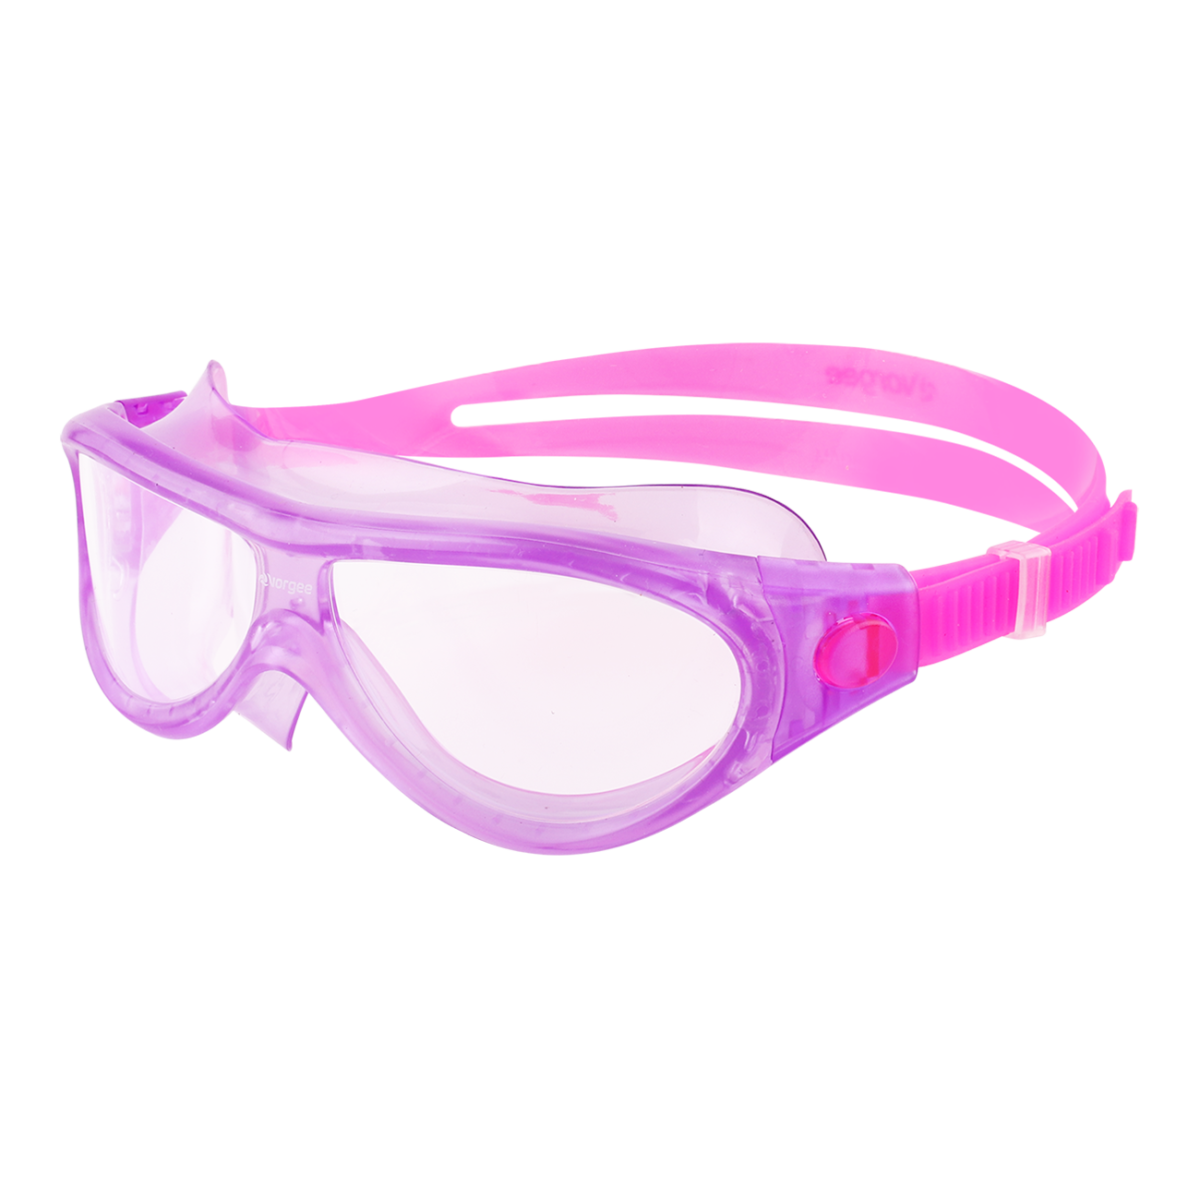 Purple and pink junior mask style swimming goggles for children. Endorsed by Kids Alive Do the Five